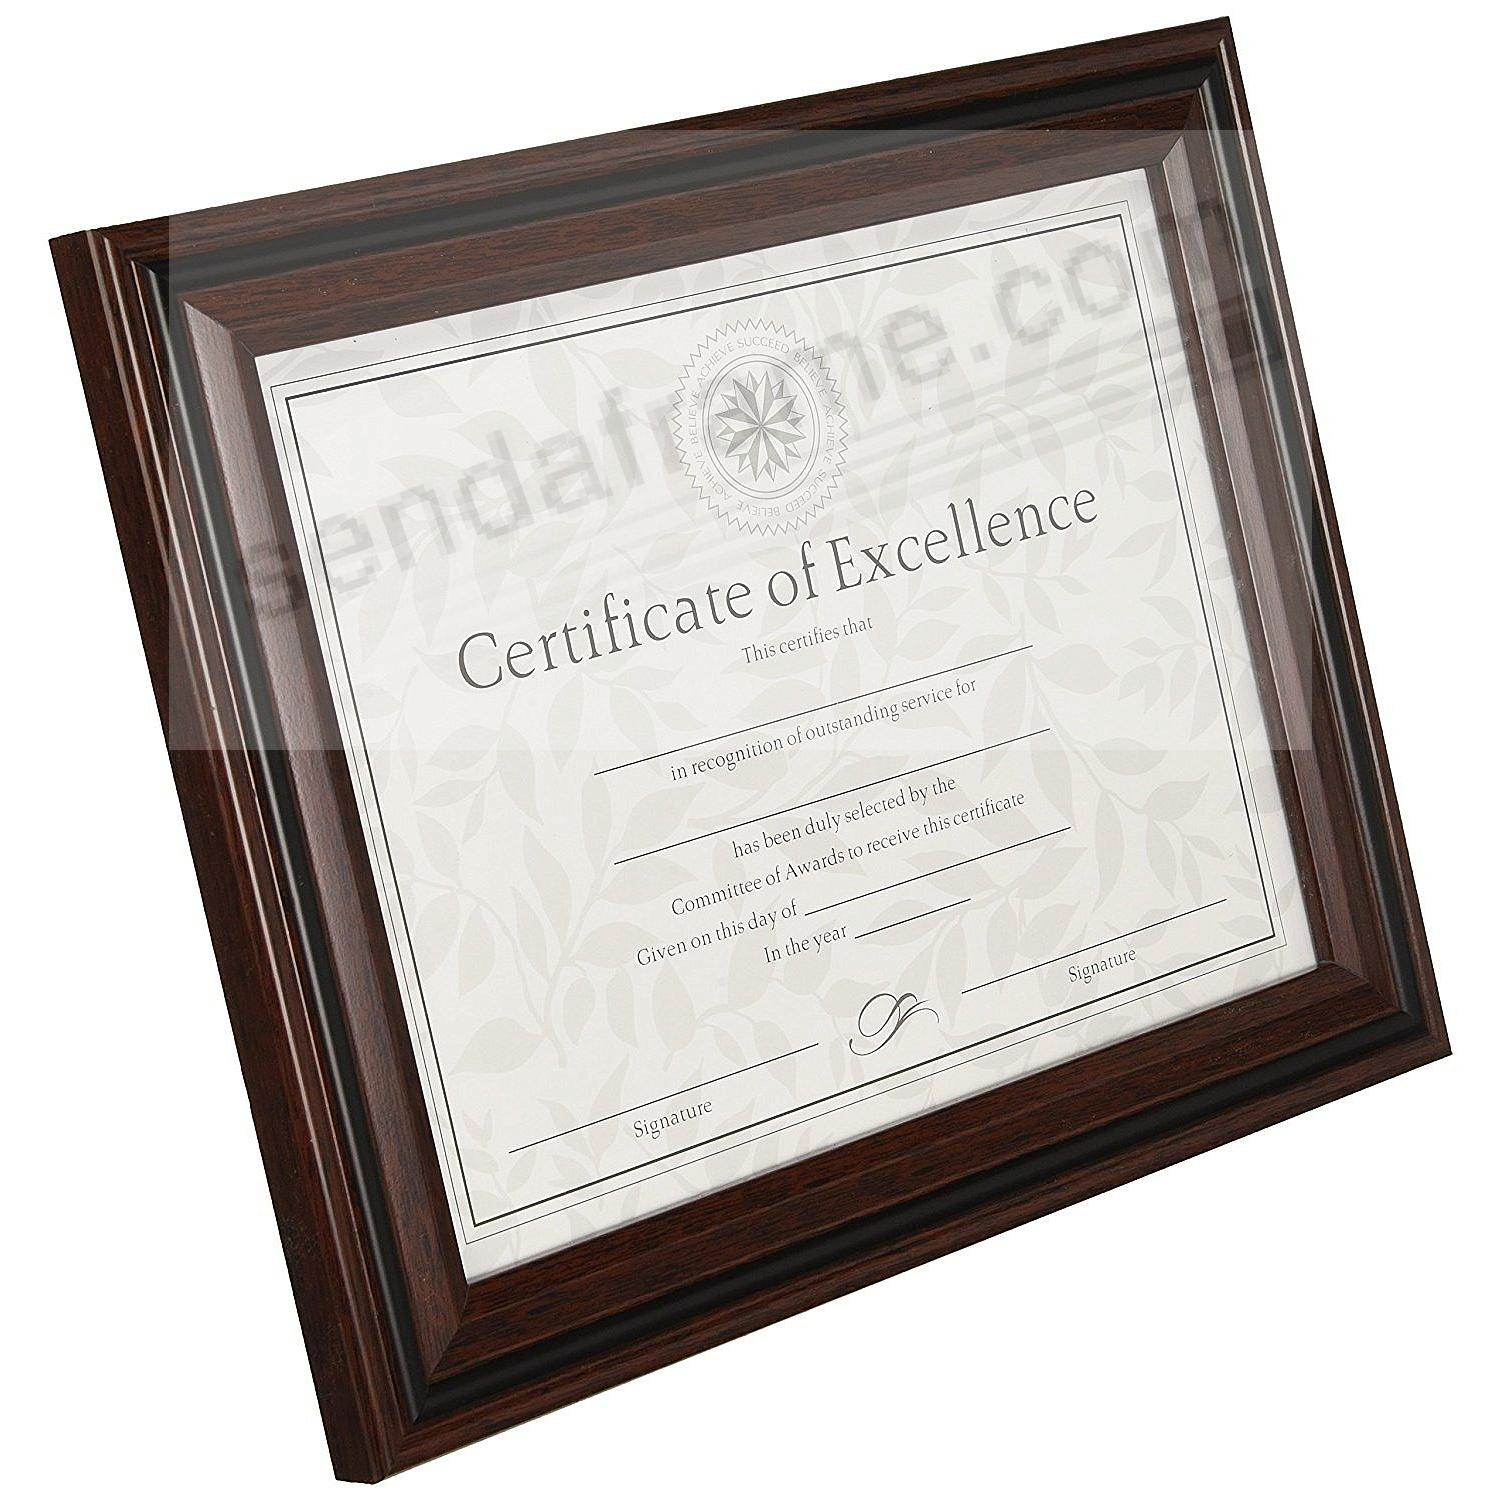 Rosewood/Black Certificate frame by DAX® - Picture Frames, Photo ...